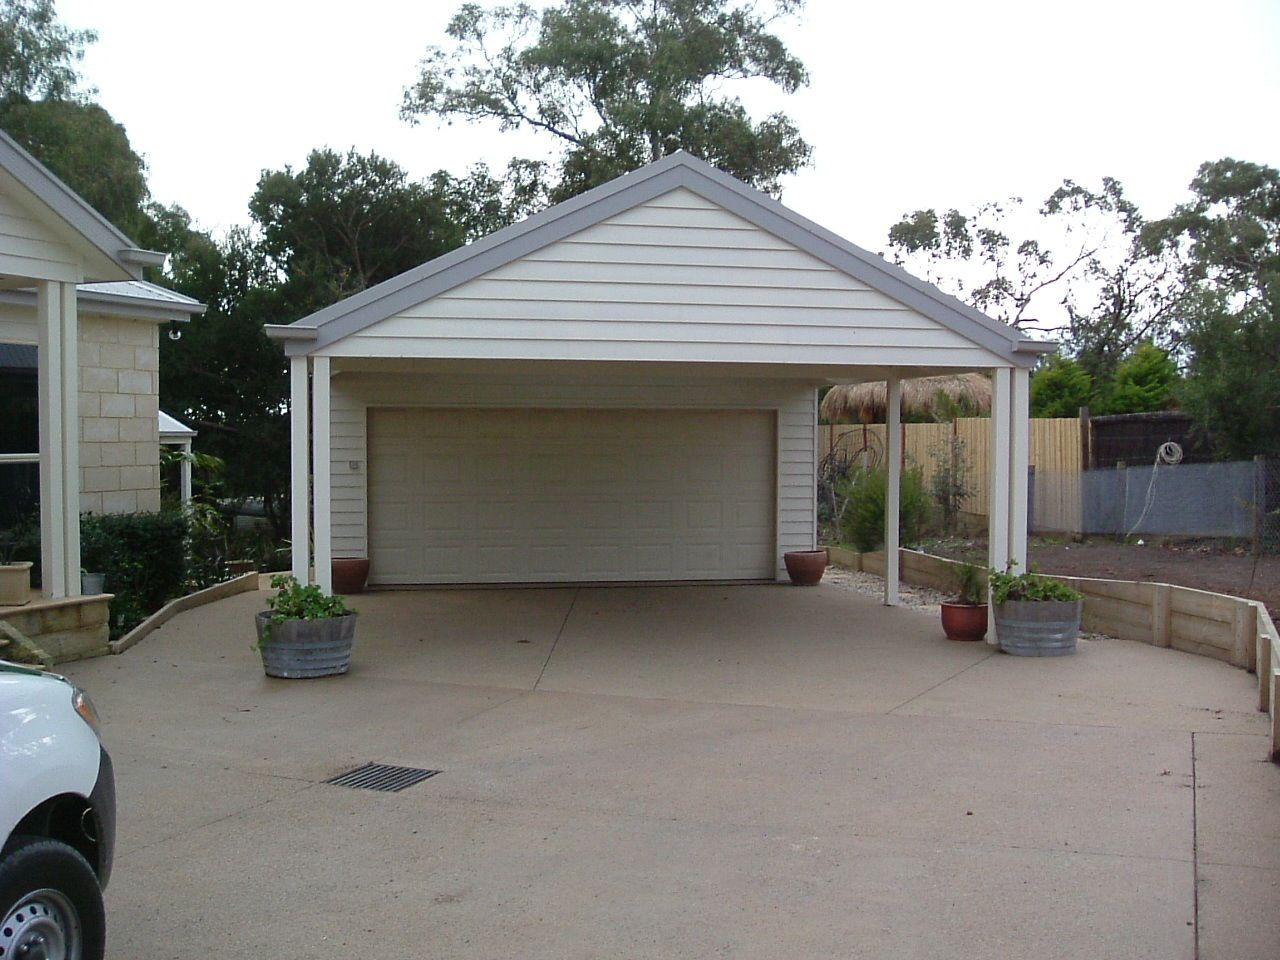 Carport ideas carport ideas pinterest carport ideas for Carport with attached workshop